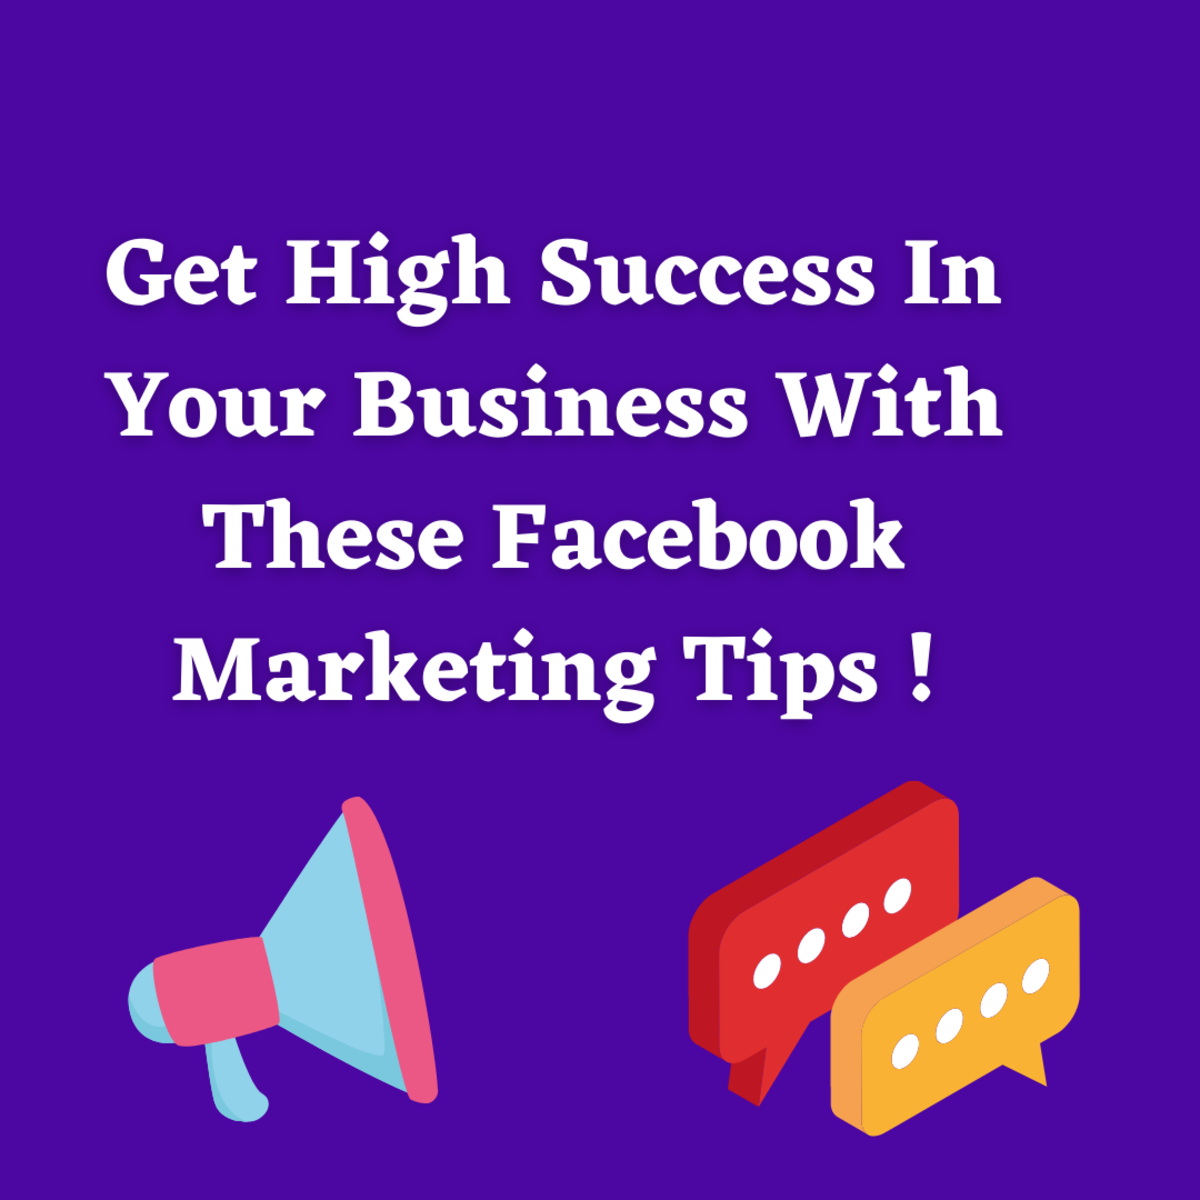 Get High Success In Your Business With These Facebook Marketing Tips !